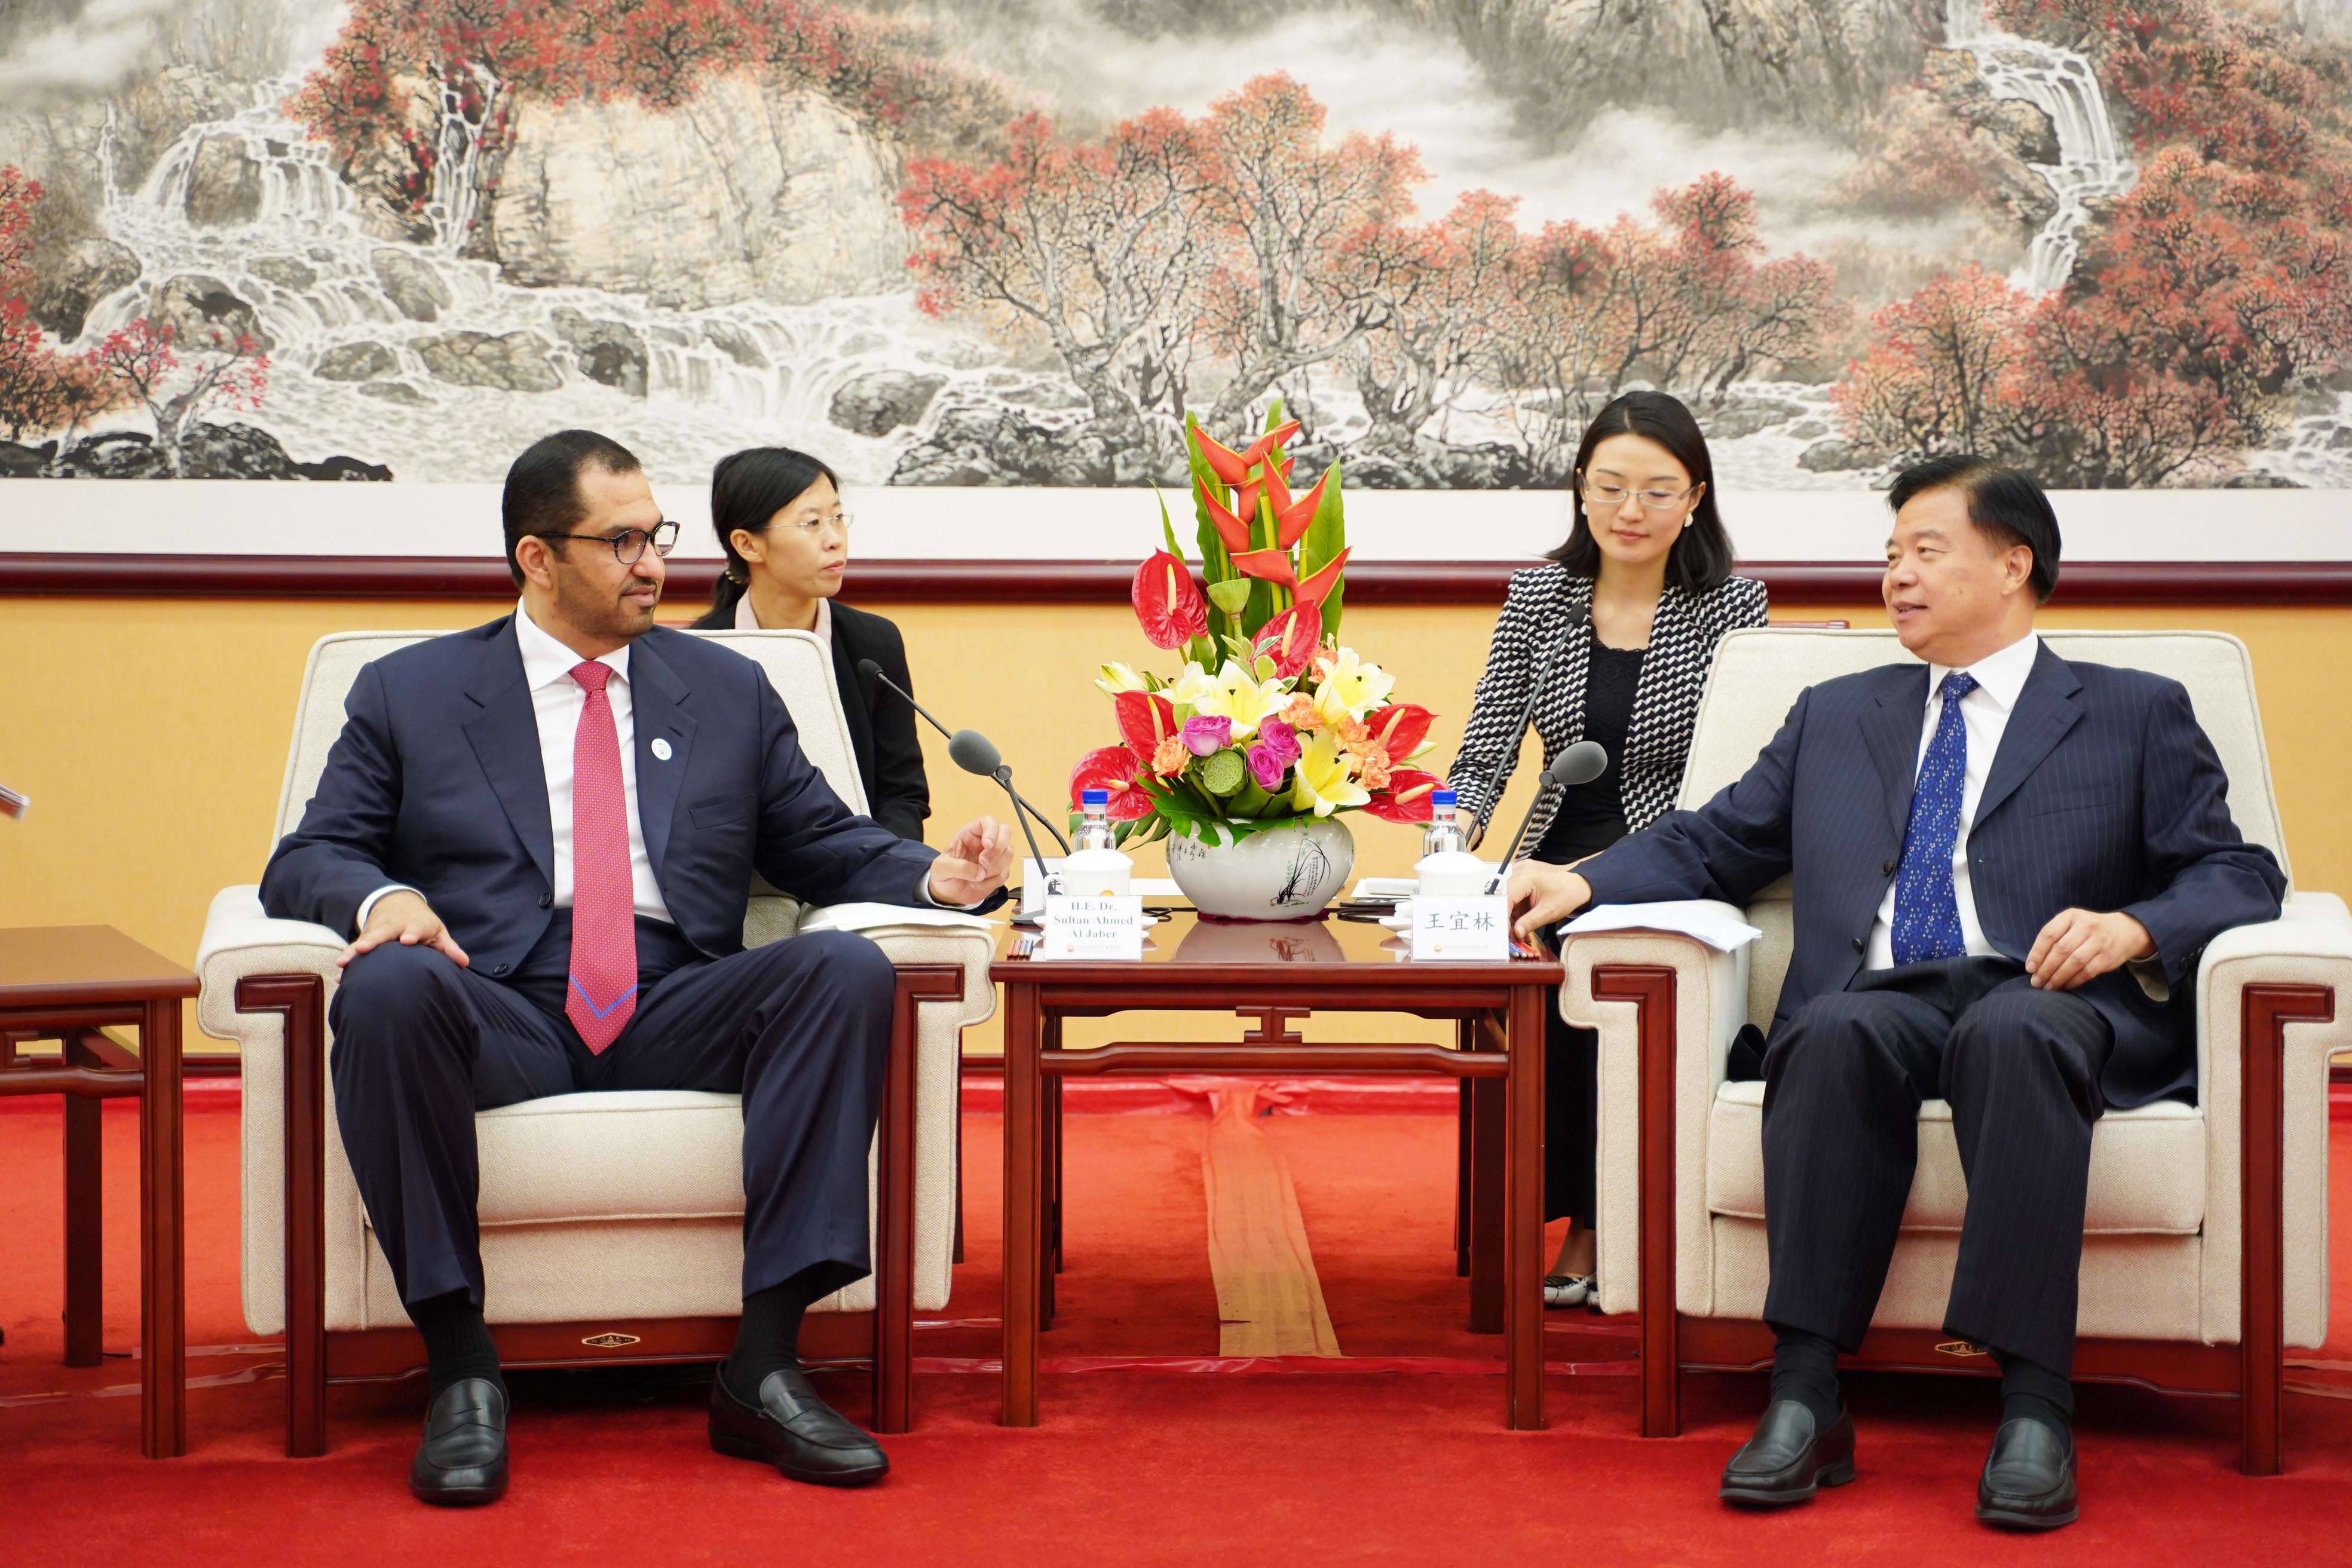 adnoc aims to deepen investment and partnership opportunities with chinese energy majors1